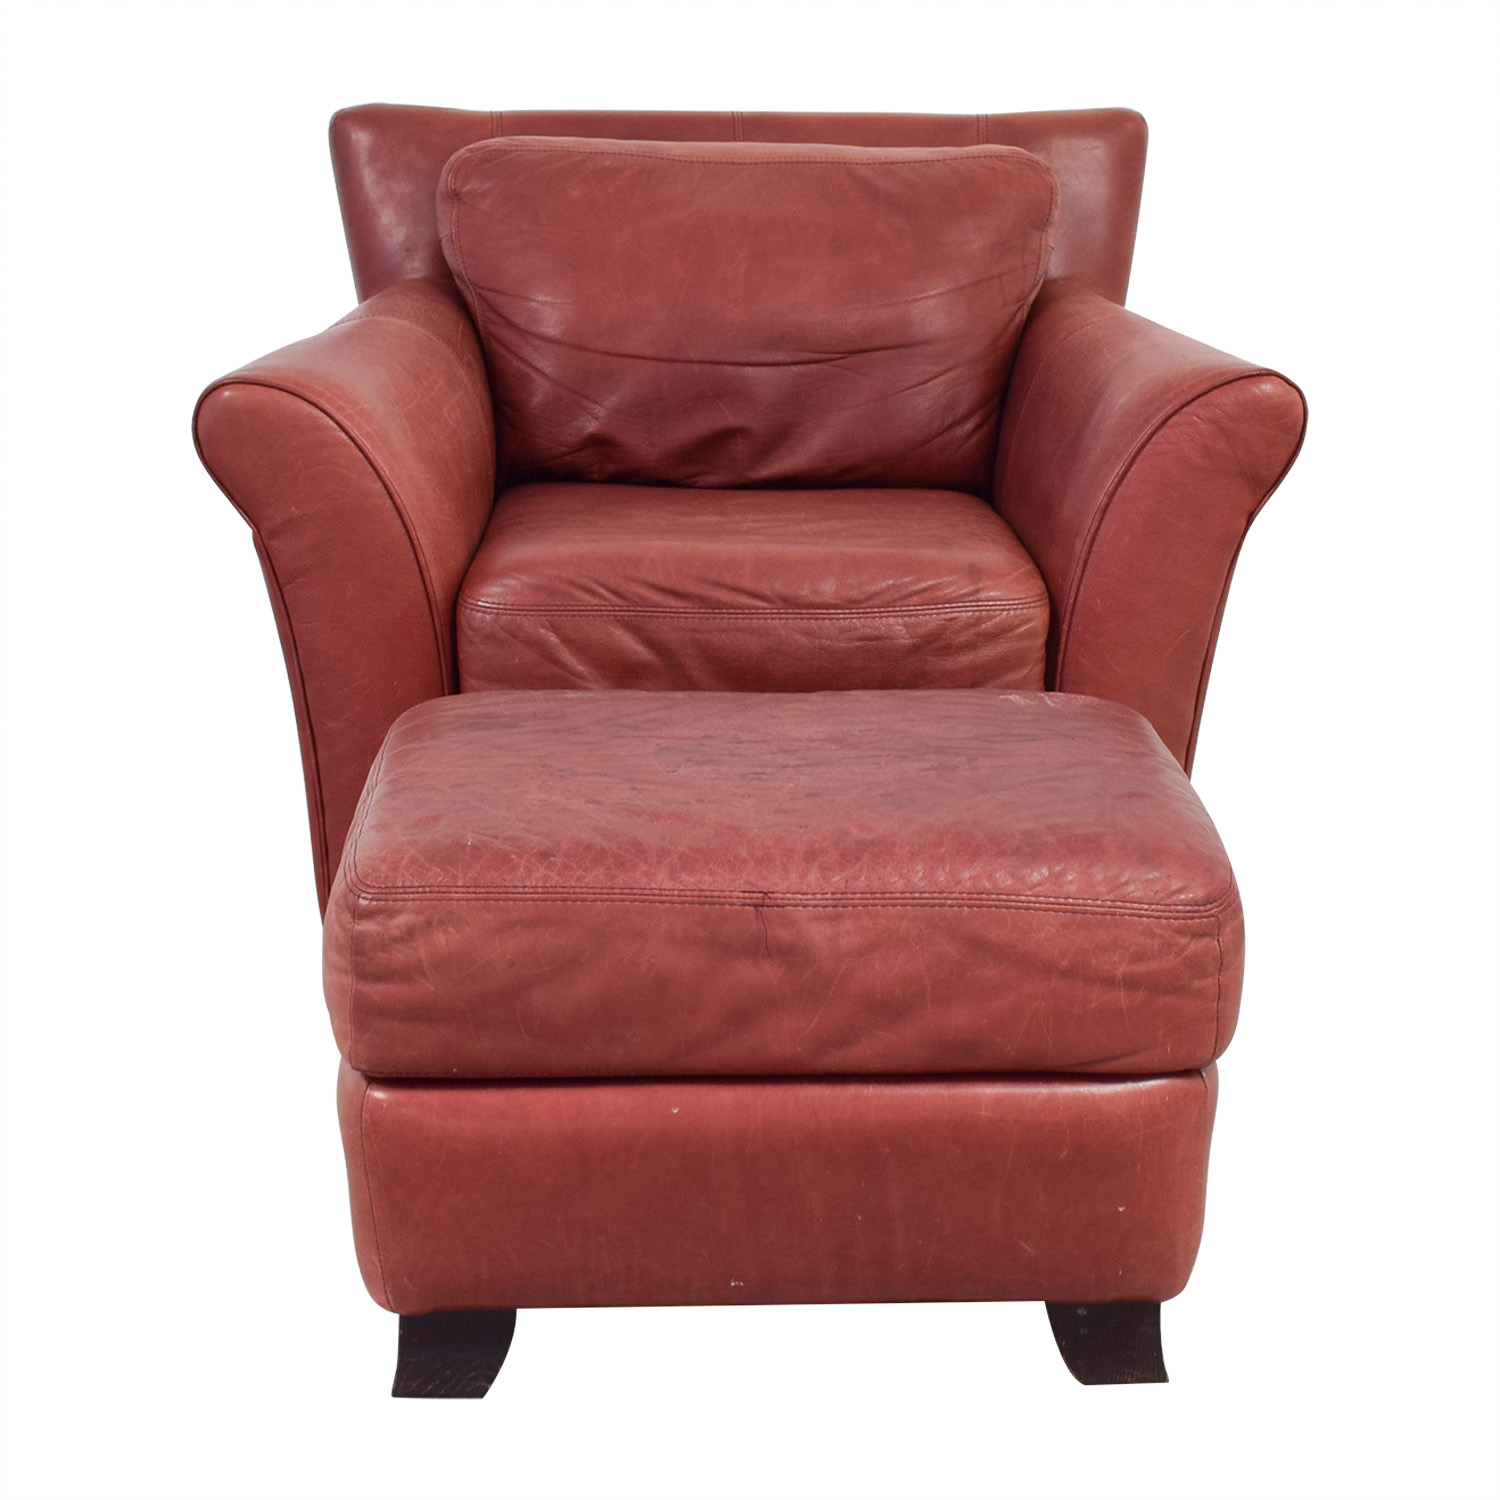 Leather Chairs With Ottoman 73 Off Palliser Palliser Red Leather Chair And Ottoman Chairs